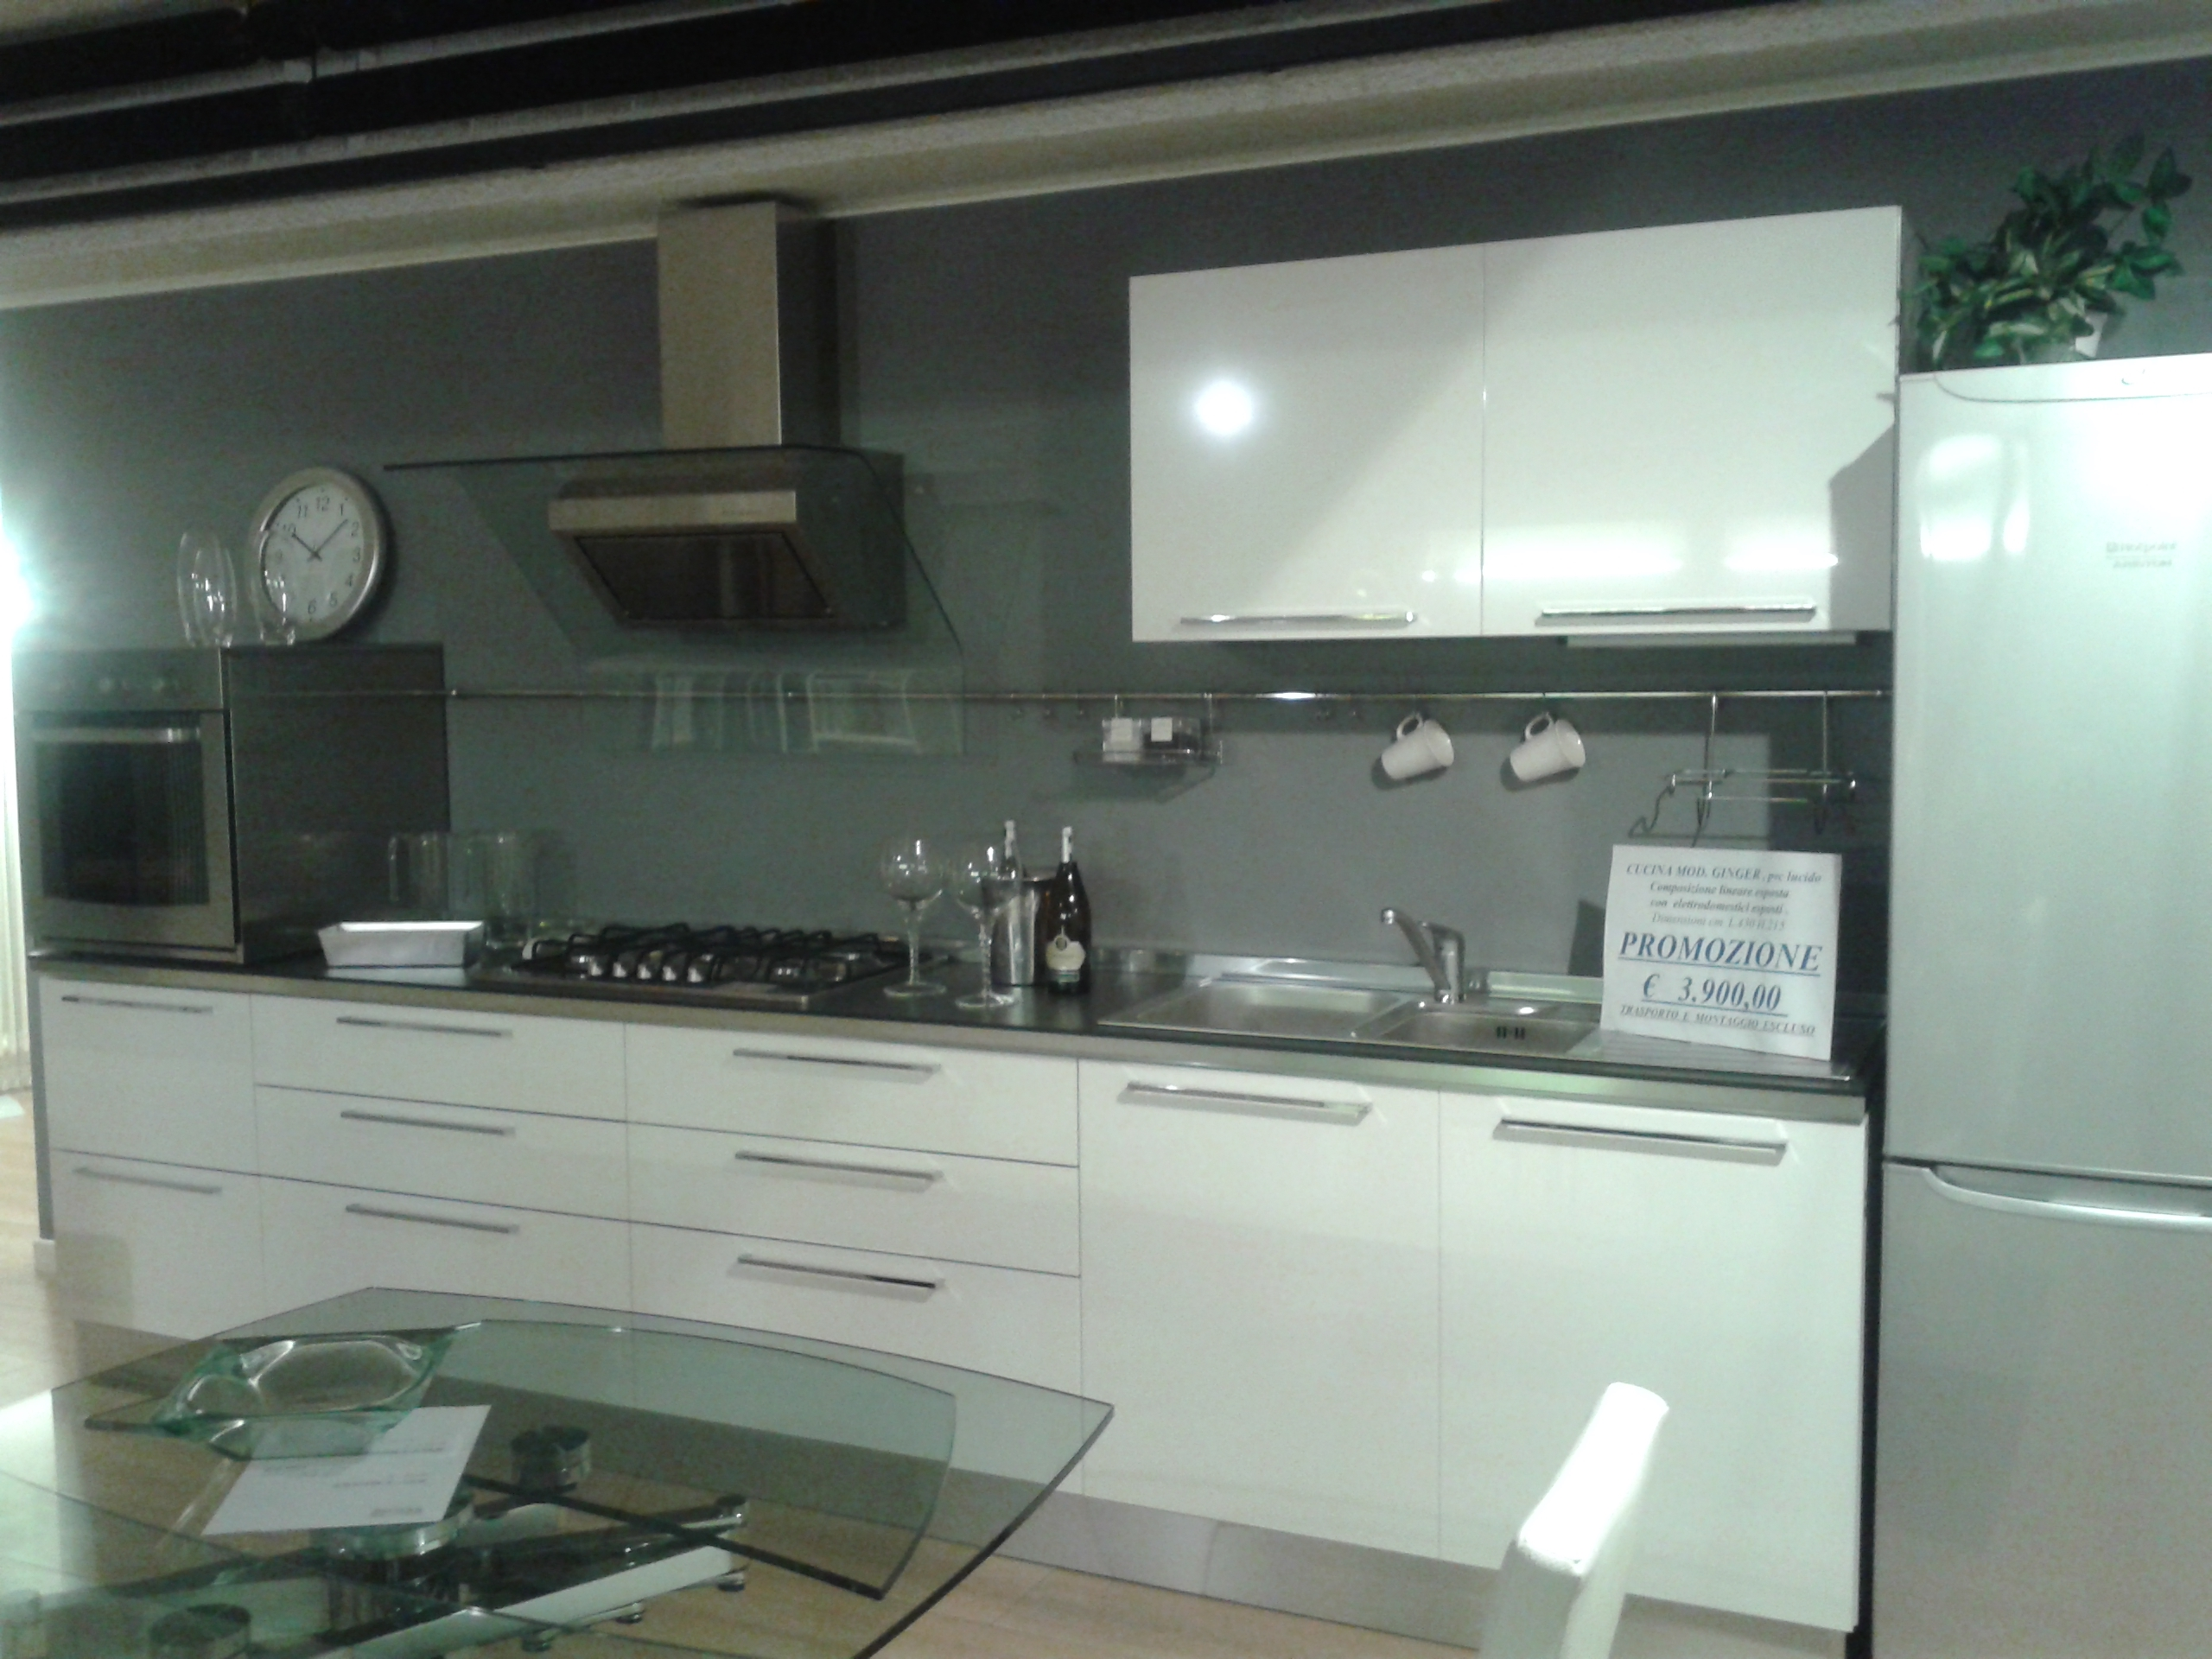 Cucina Veneta Cucine Modello Prevolution Ginger Plus Disponibile Nei  #567560 2560 1920 Open Space Con Sala Da Pranzo